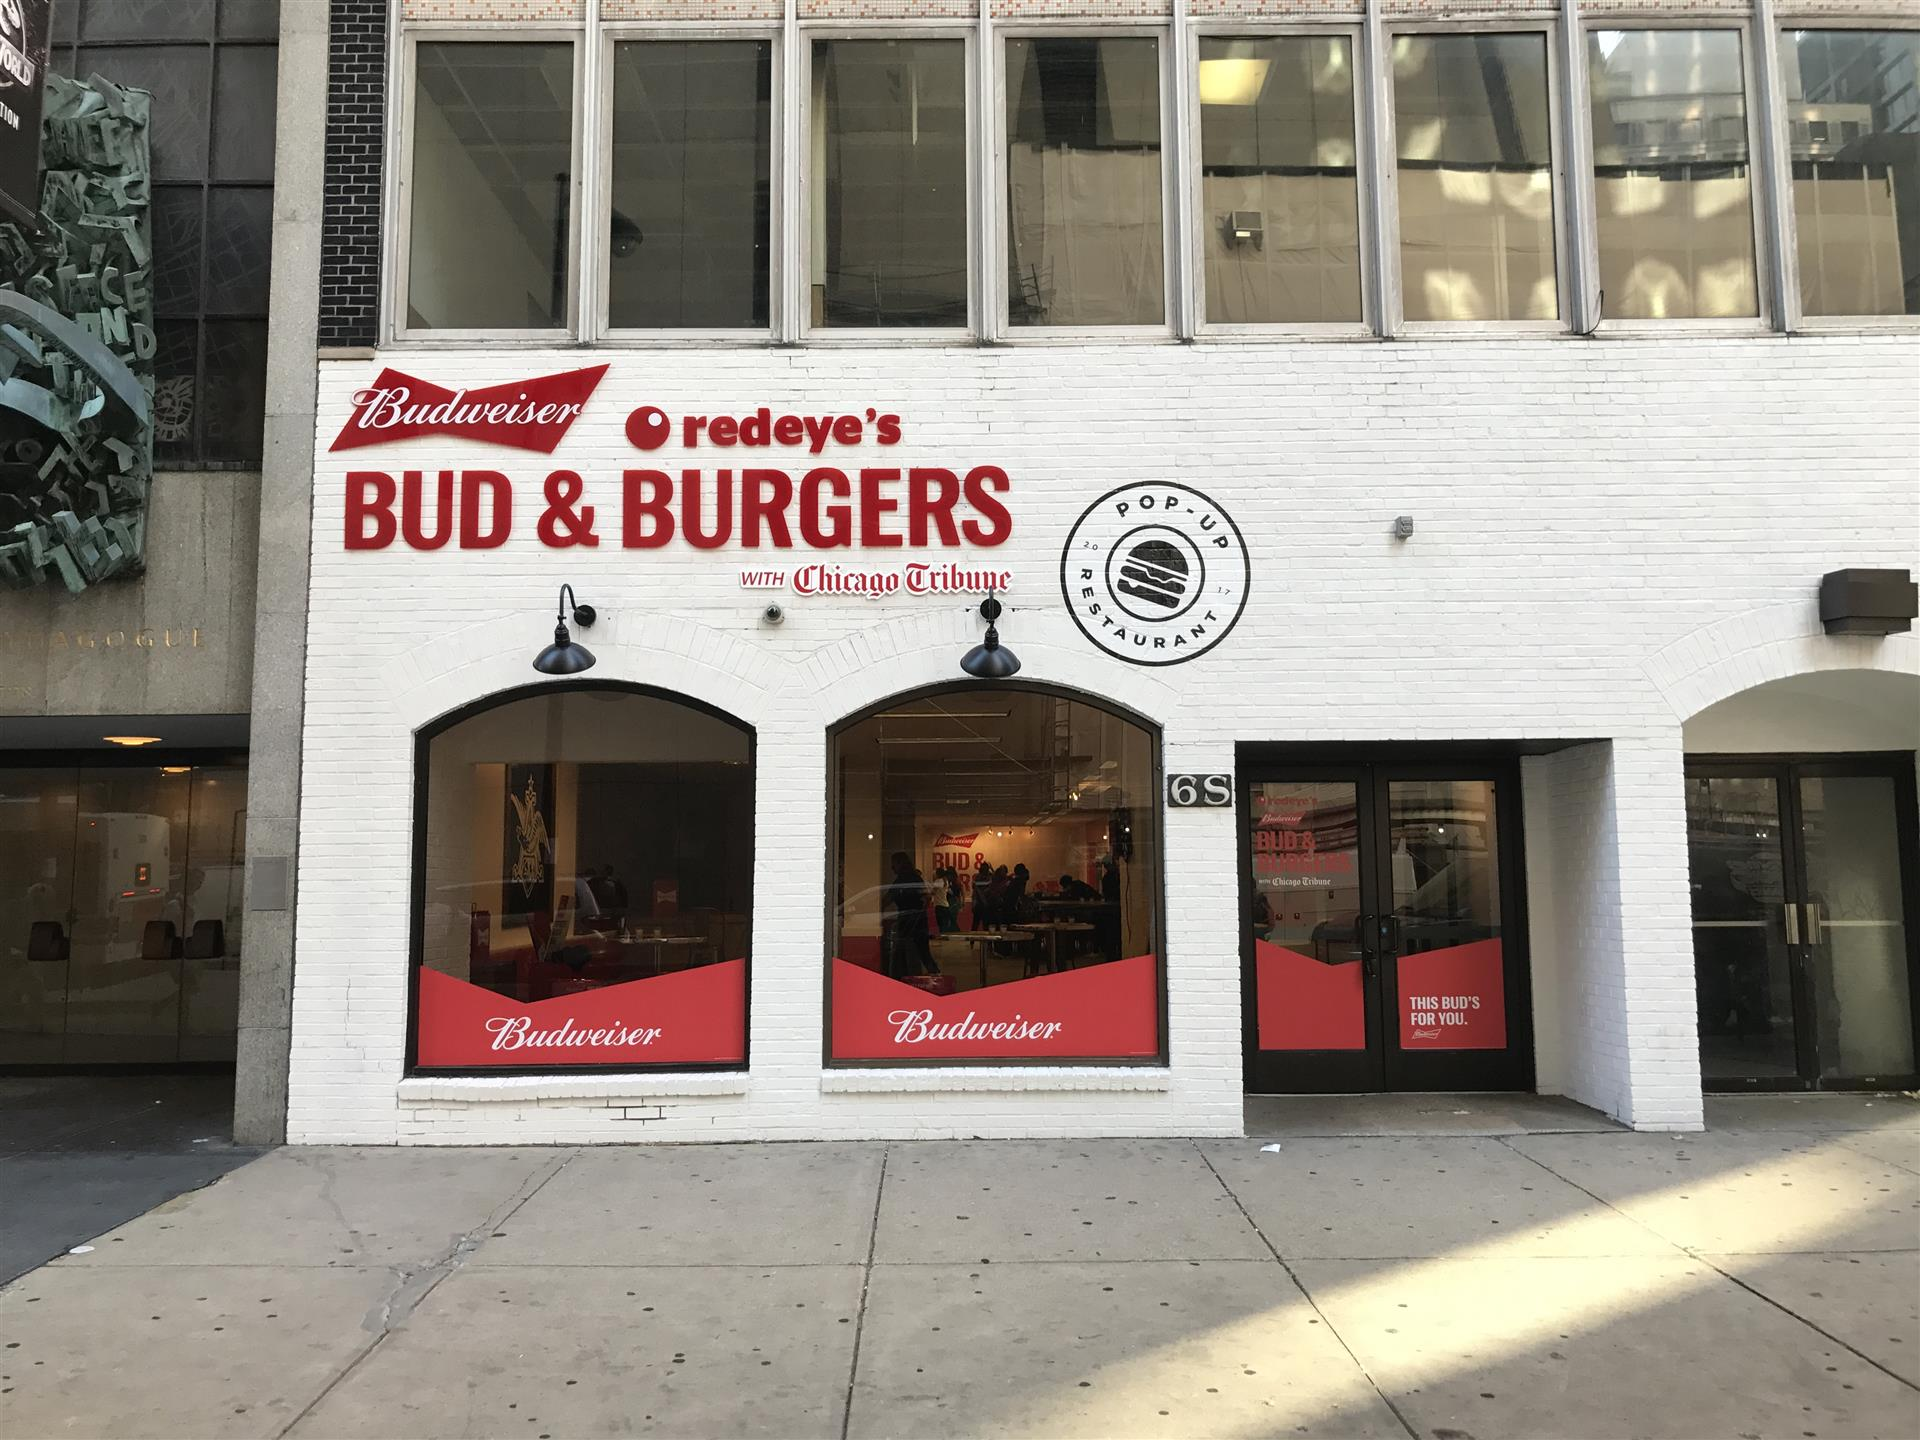 Redeye's Bud & Burgers Wall Sign